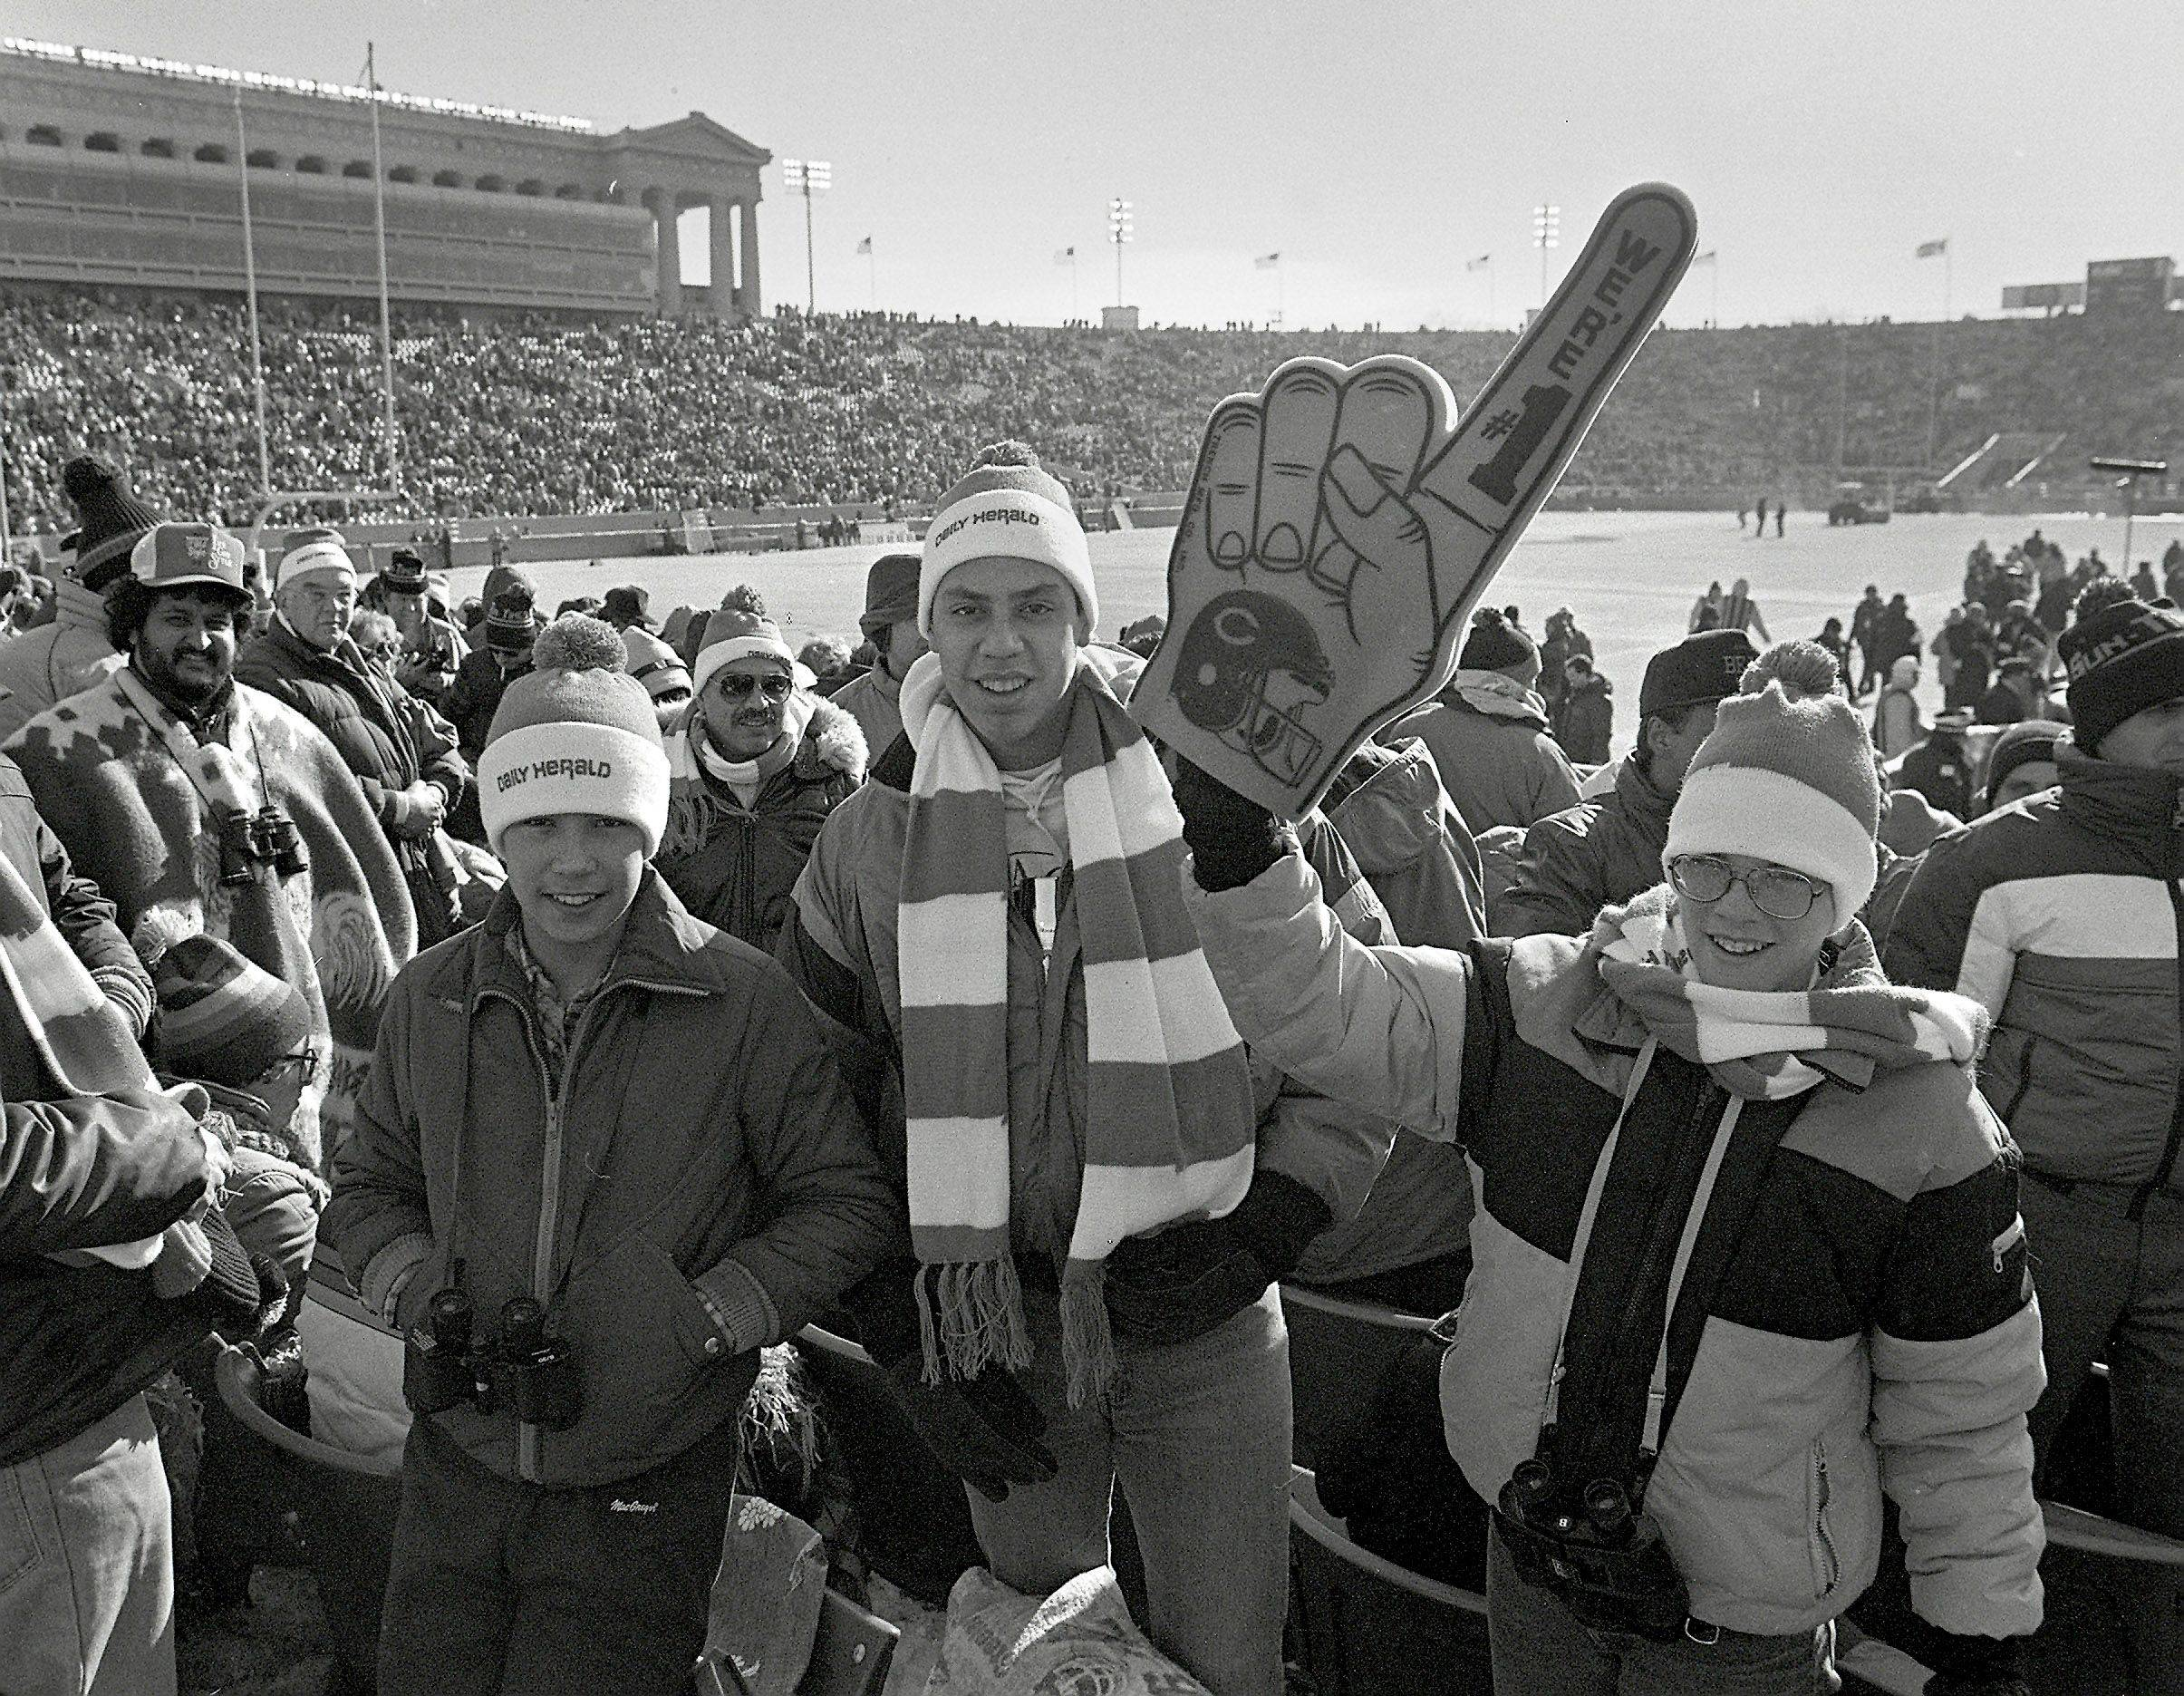 Future NFL player Brady Smith, right, was a 12-year-old Daily Herald newspaper carrier from Barrington when he won tickets to the Bears game against the New York Giants on Jan. 5, 1986.